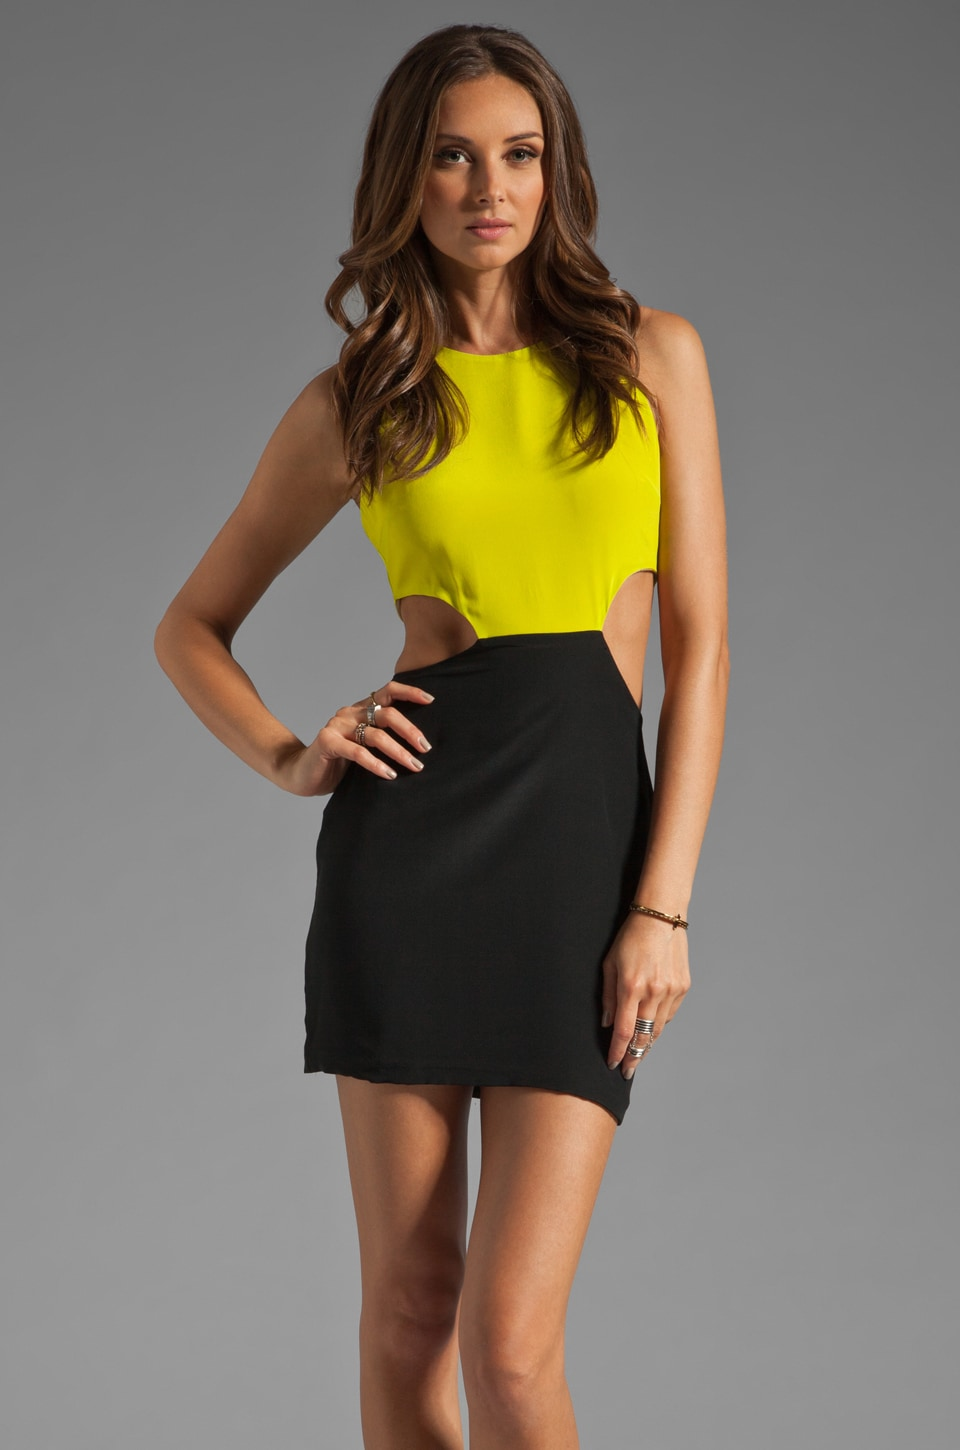 Naven 2 Tone Cutout Dress in Chartreuse/Black